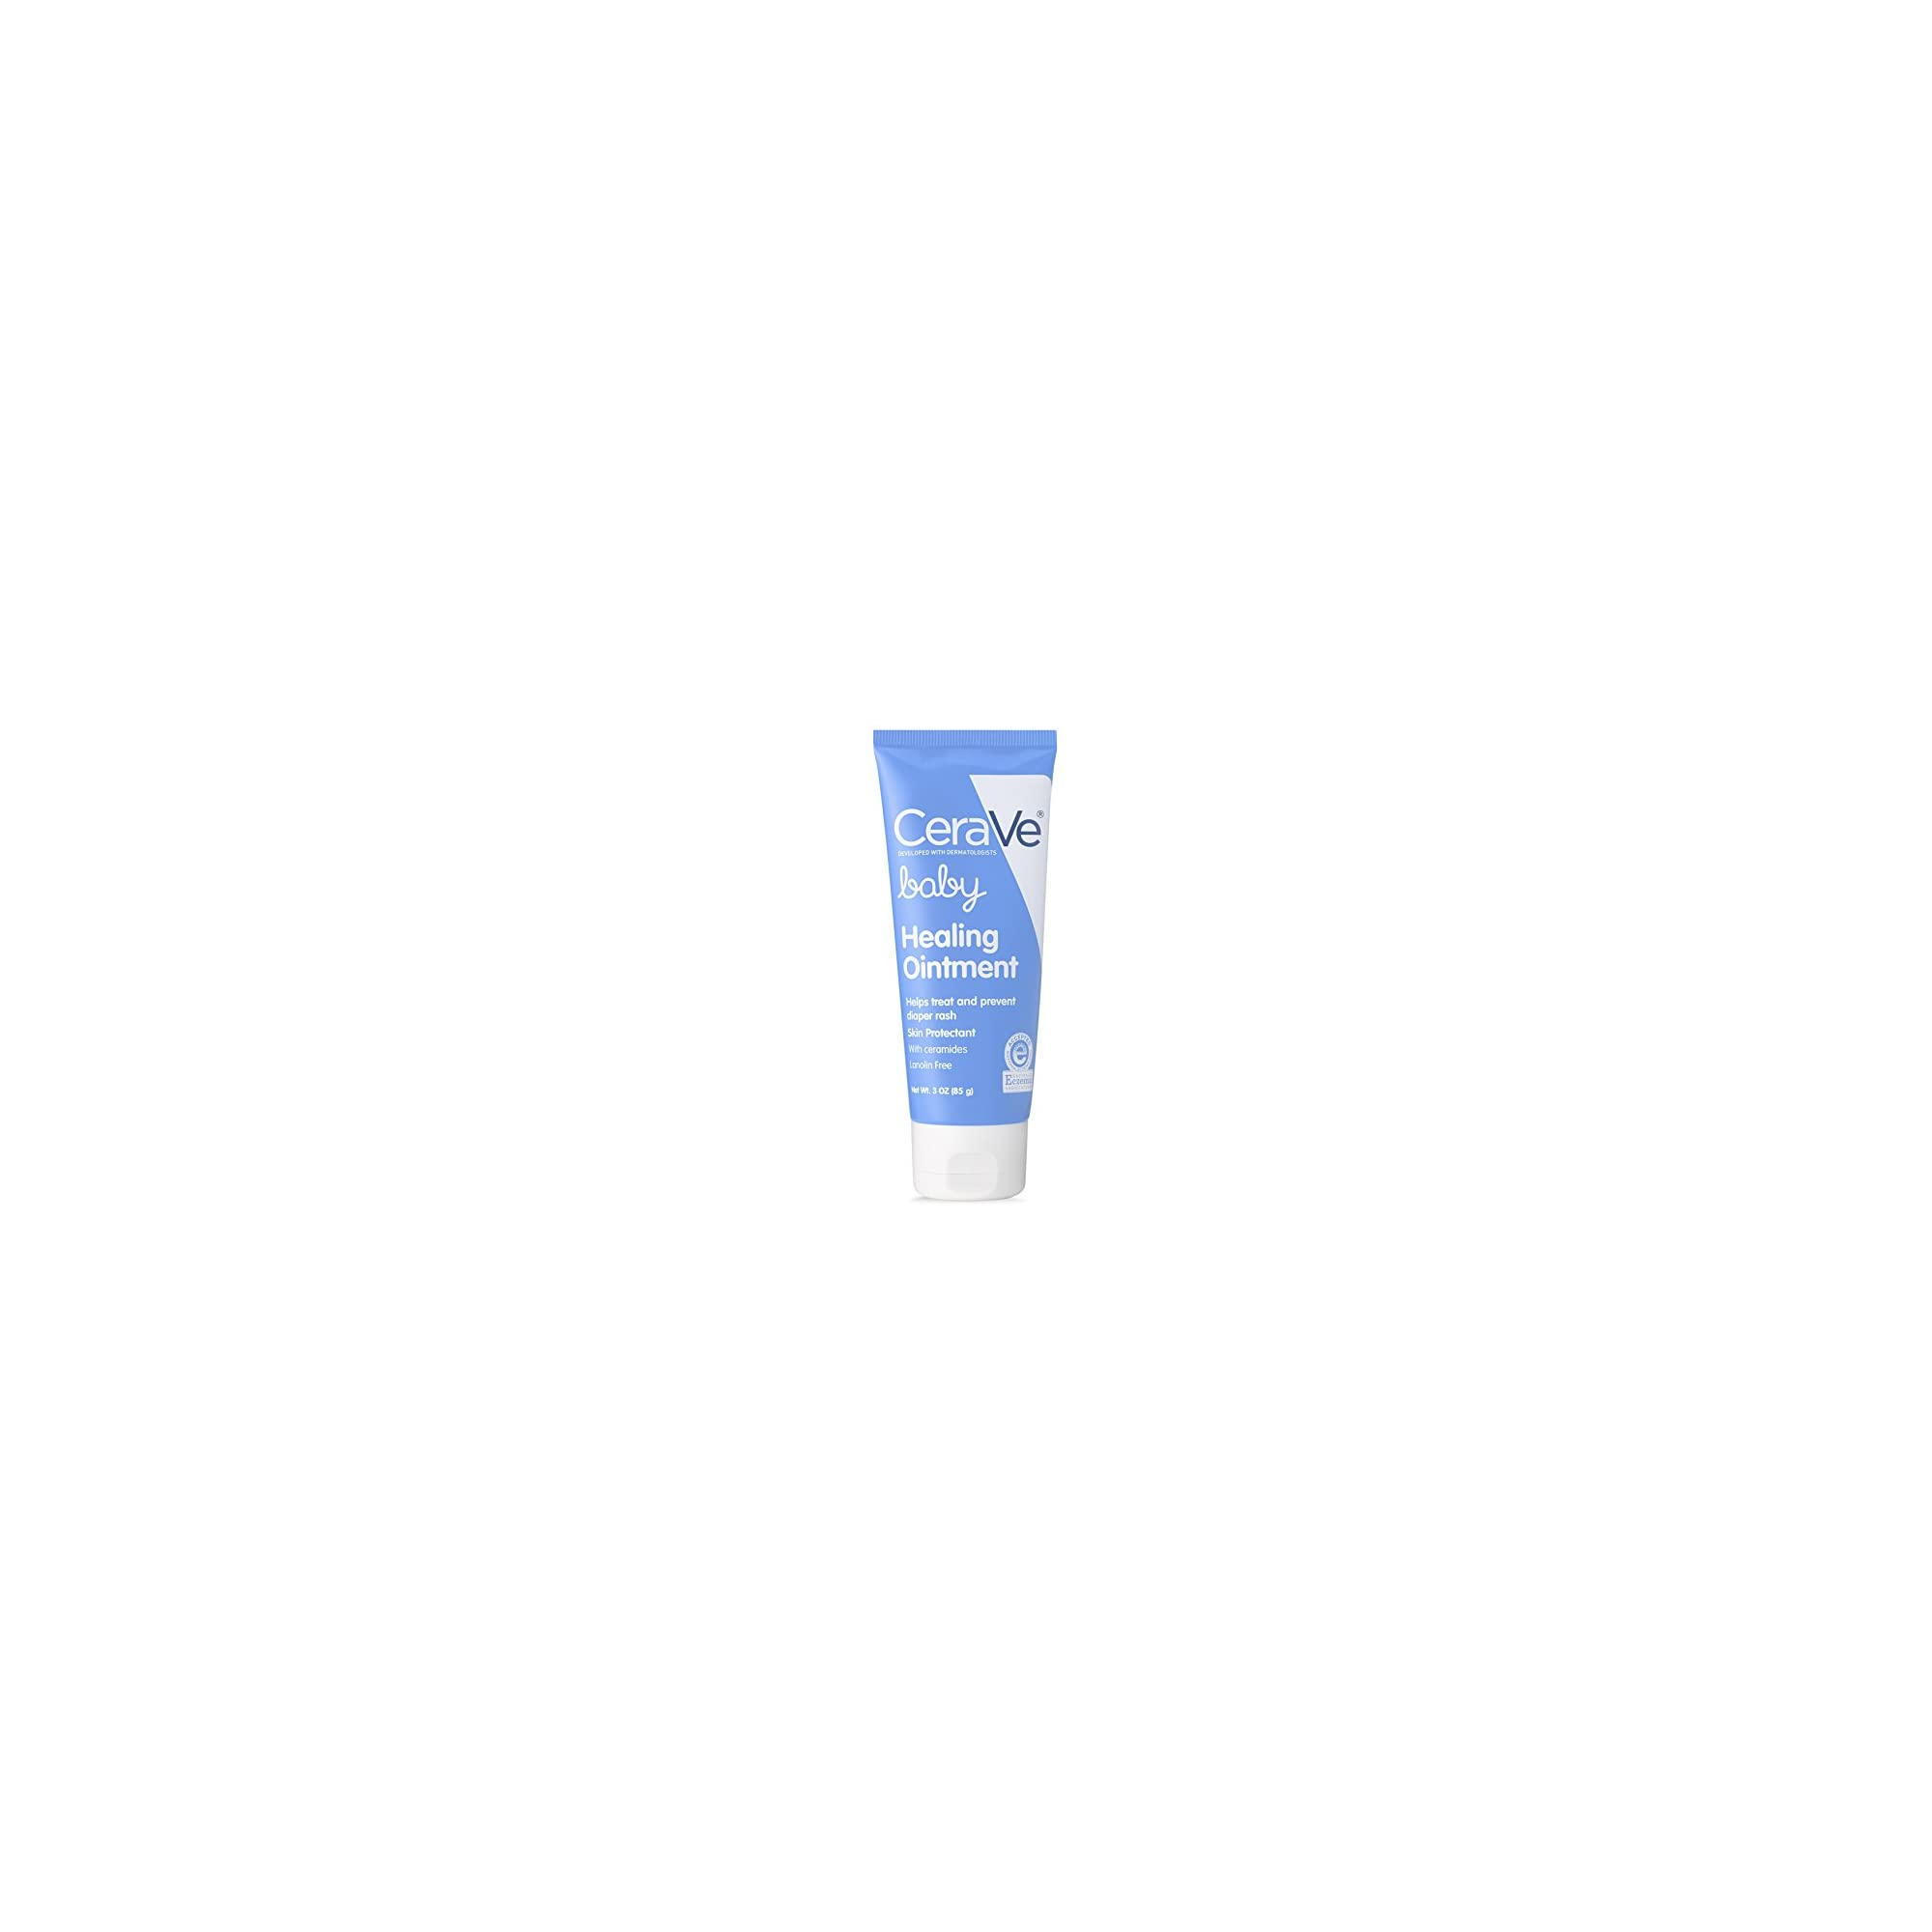 CeraVe Healing Ointment for Baby   3 Ounce   Diaper Rash Cream and Cracked Skin Repair   Lanolin & Fragrance Free